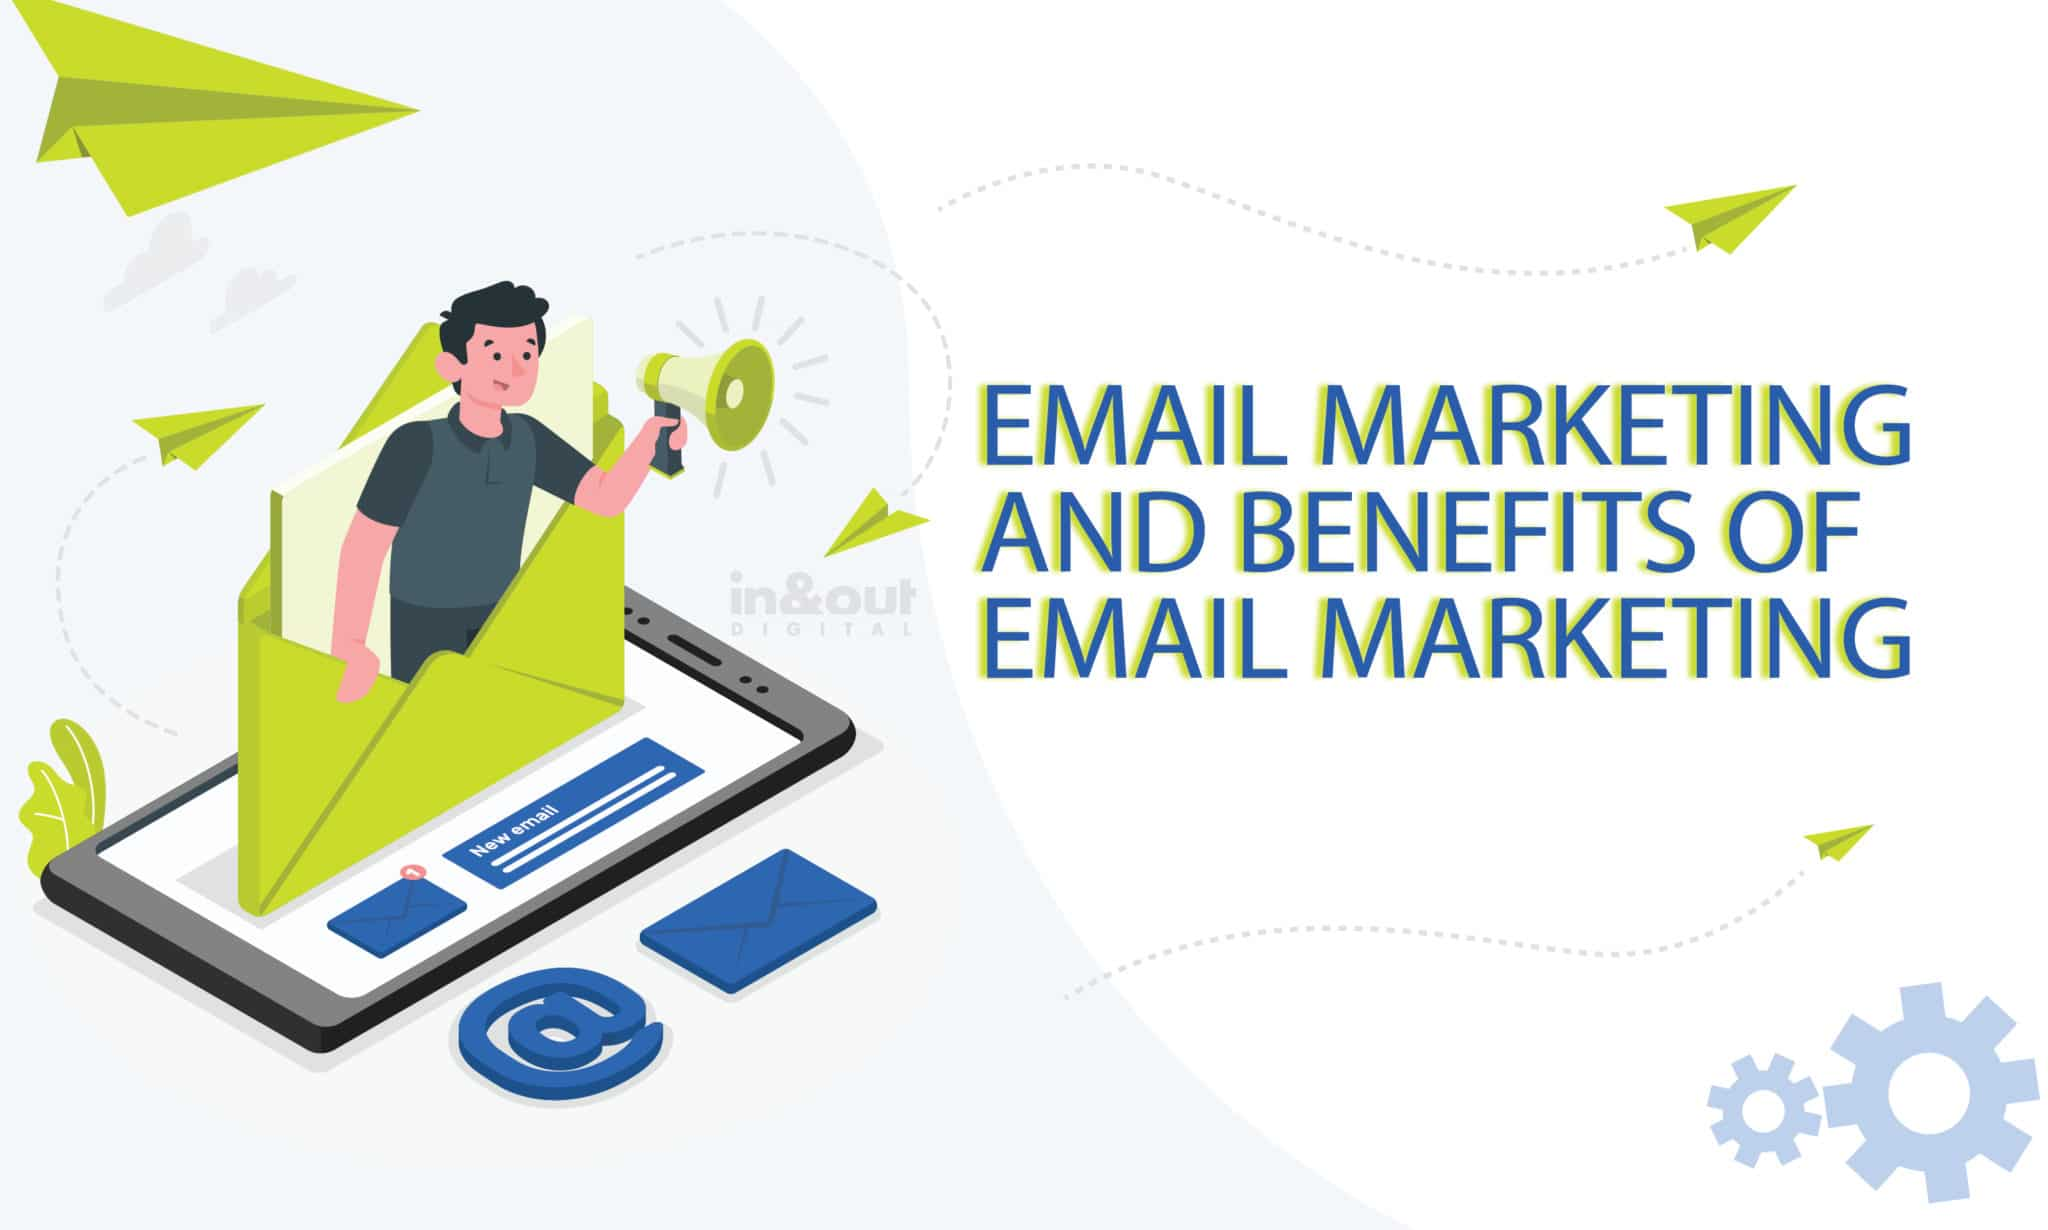 email marketing and benefits of email marketing